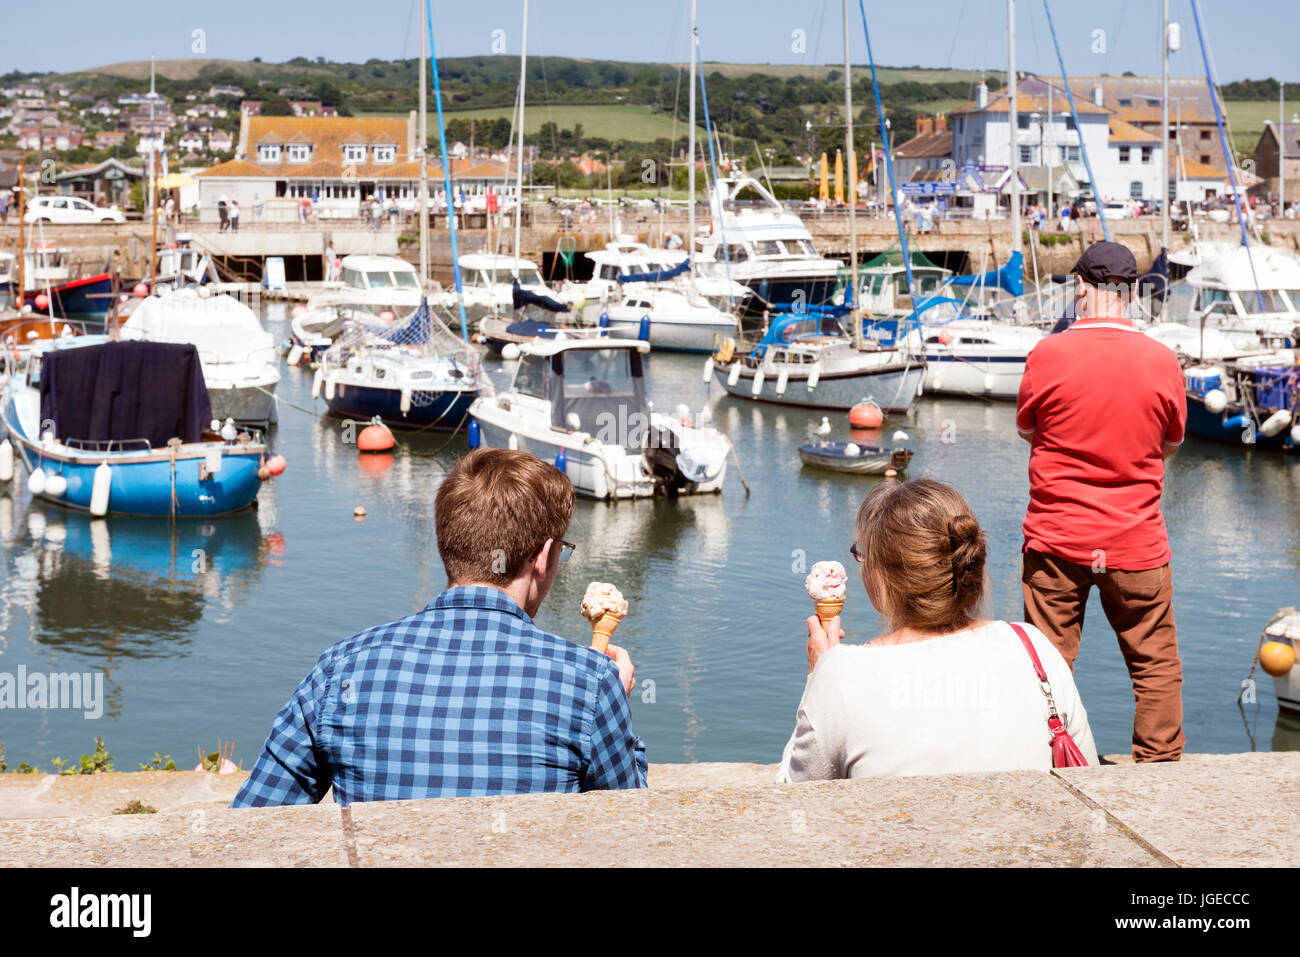 People eating ice creams overlooking the harbour at West Bay, Dorset, UK. - Stock Image